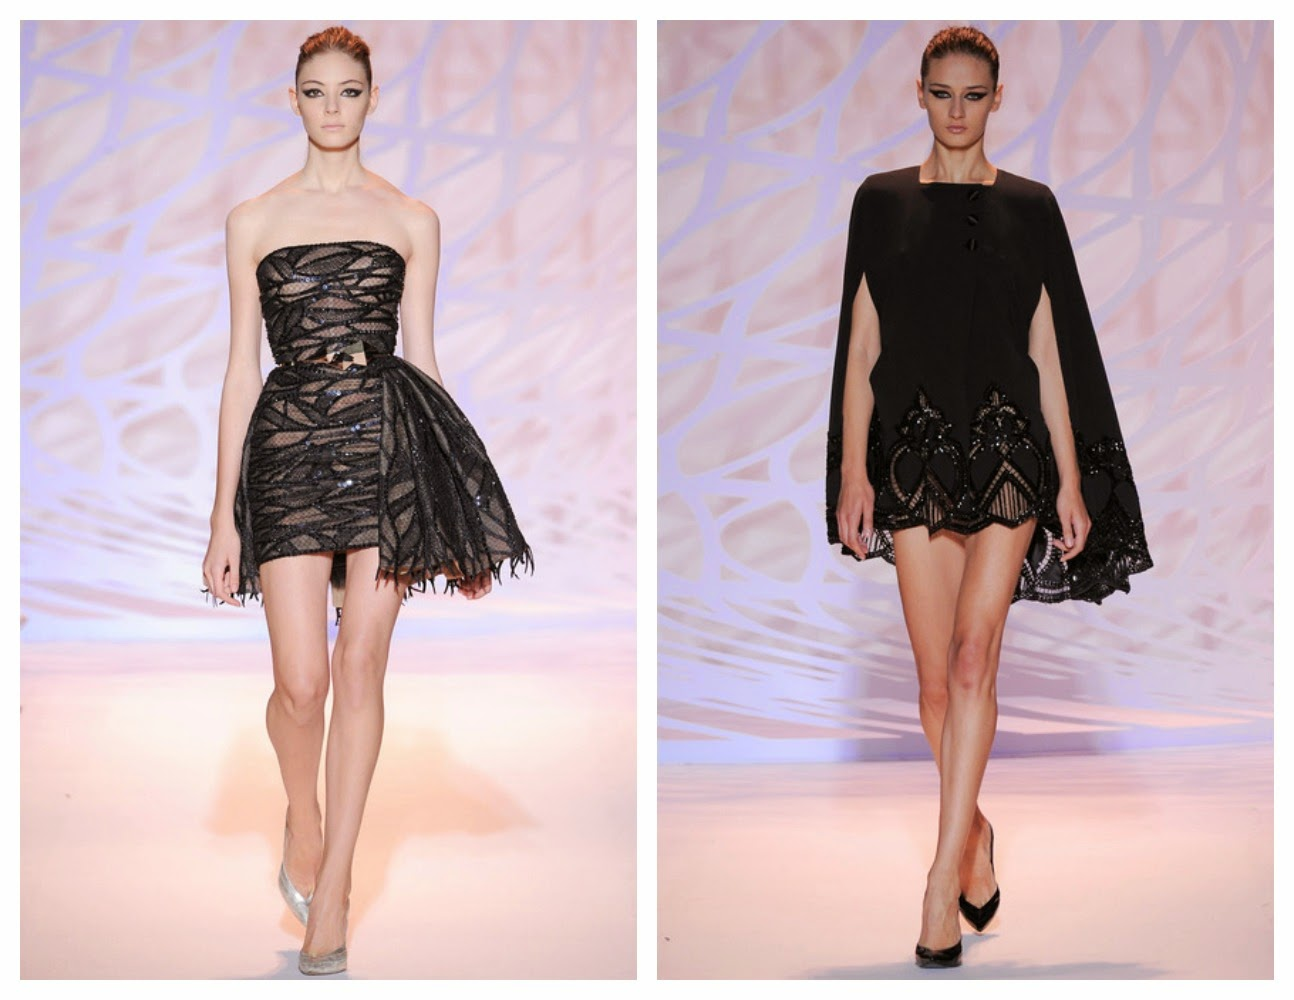 Short Cocktail Dresses Fall 2014 Haute Couture Fall Winter